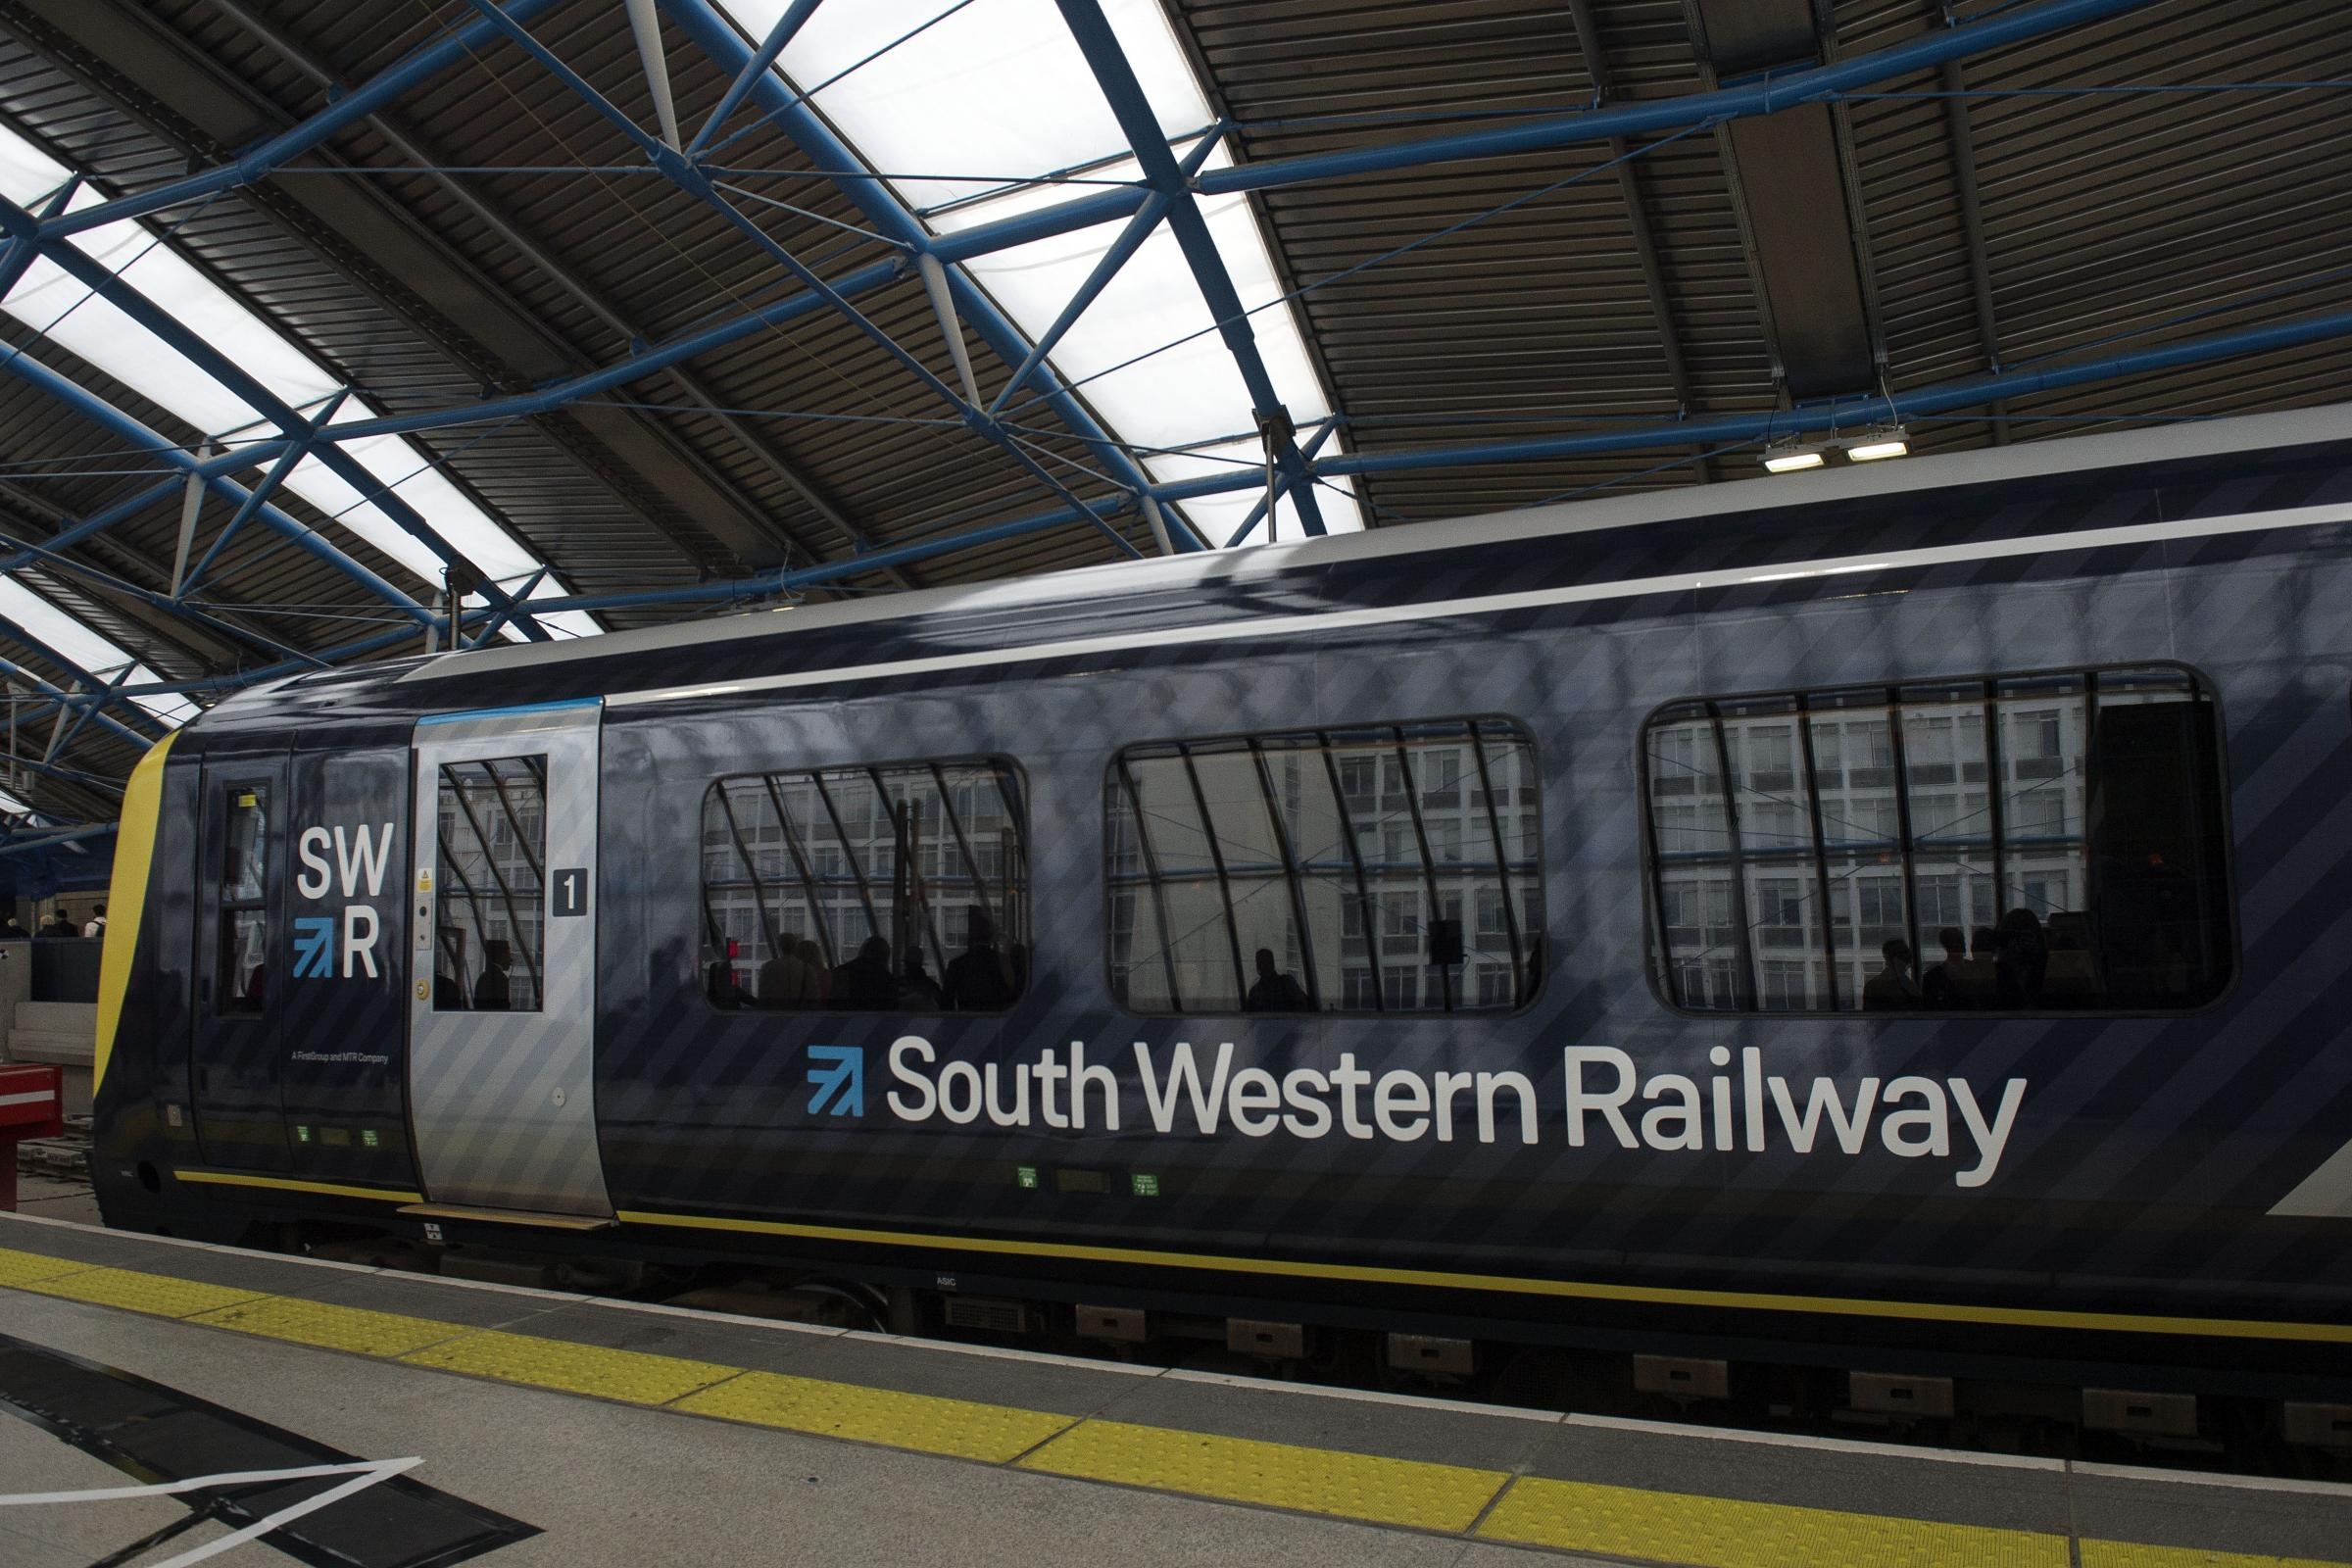 Over-running engineering brings Monday misery for rail passengers